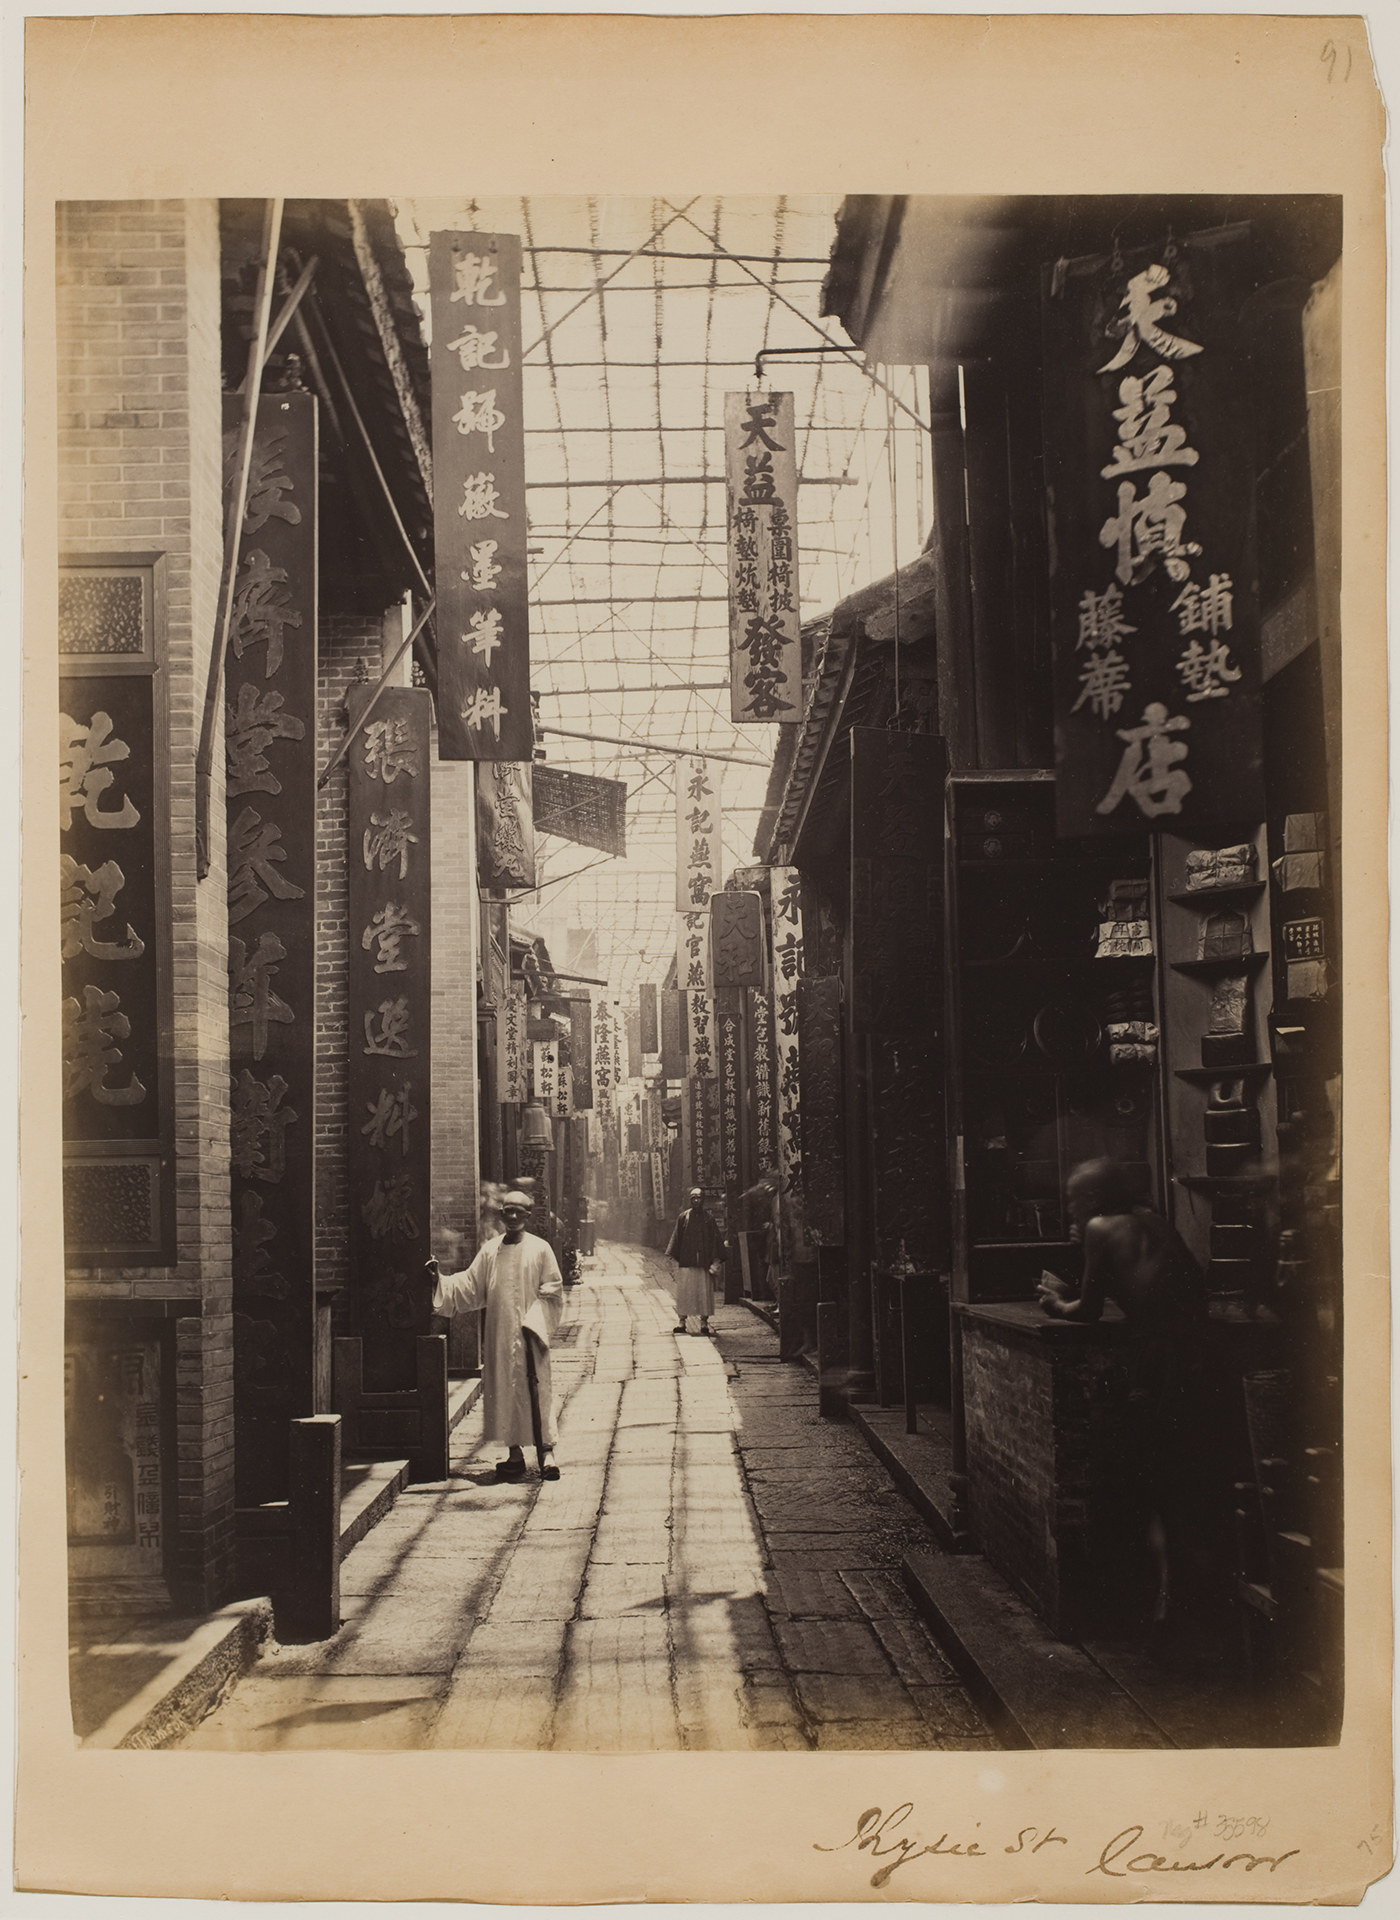 A man stands near a doorway in China near two other men, one standing in shadows, on an otherwise empty street of storefronts